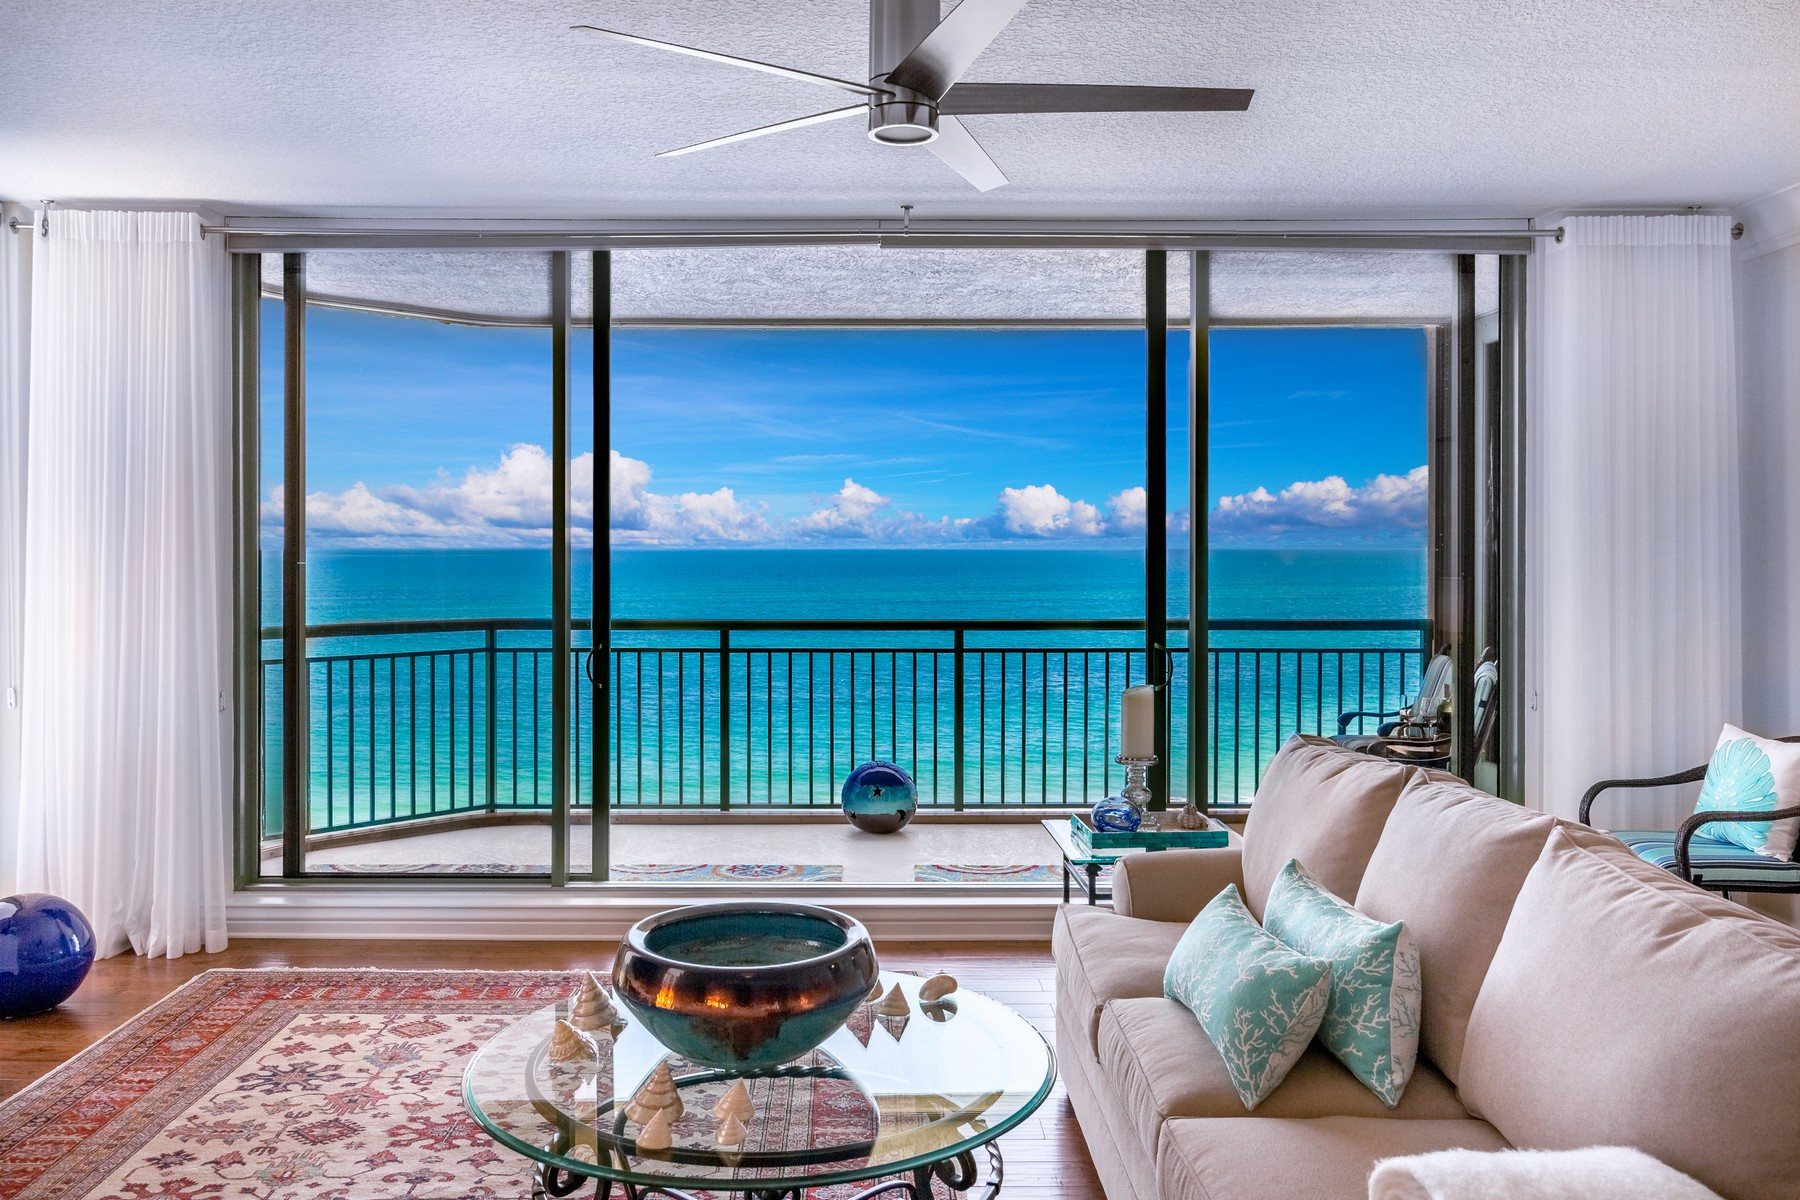 Private Oceanfront Paradise 4310 N Highway A1A, #802N Hutchinson Island, Florida 34949 Usa